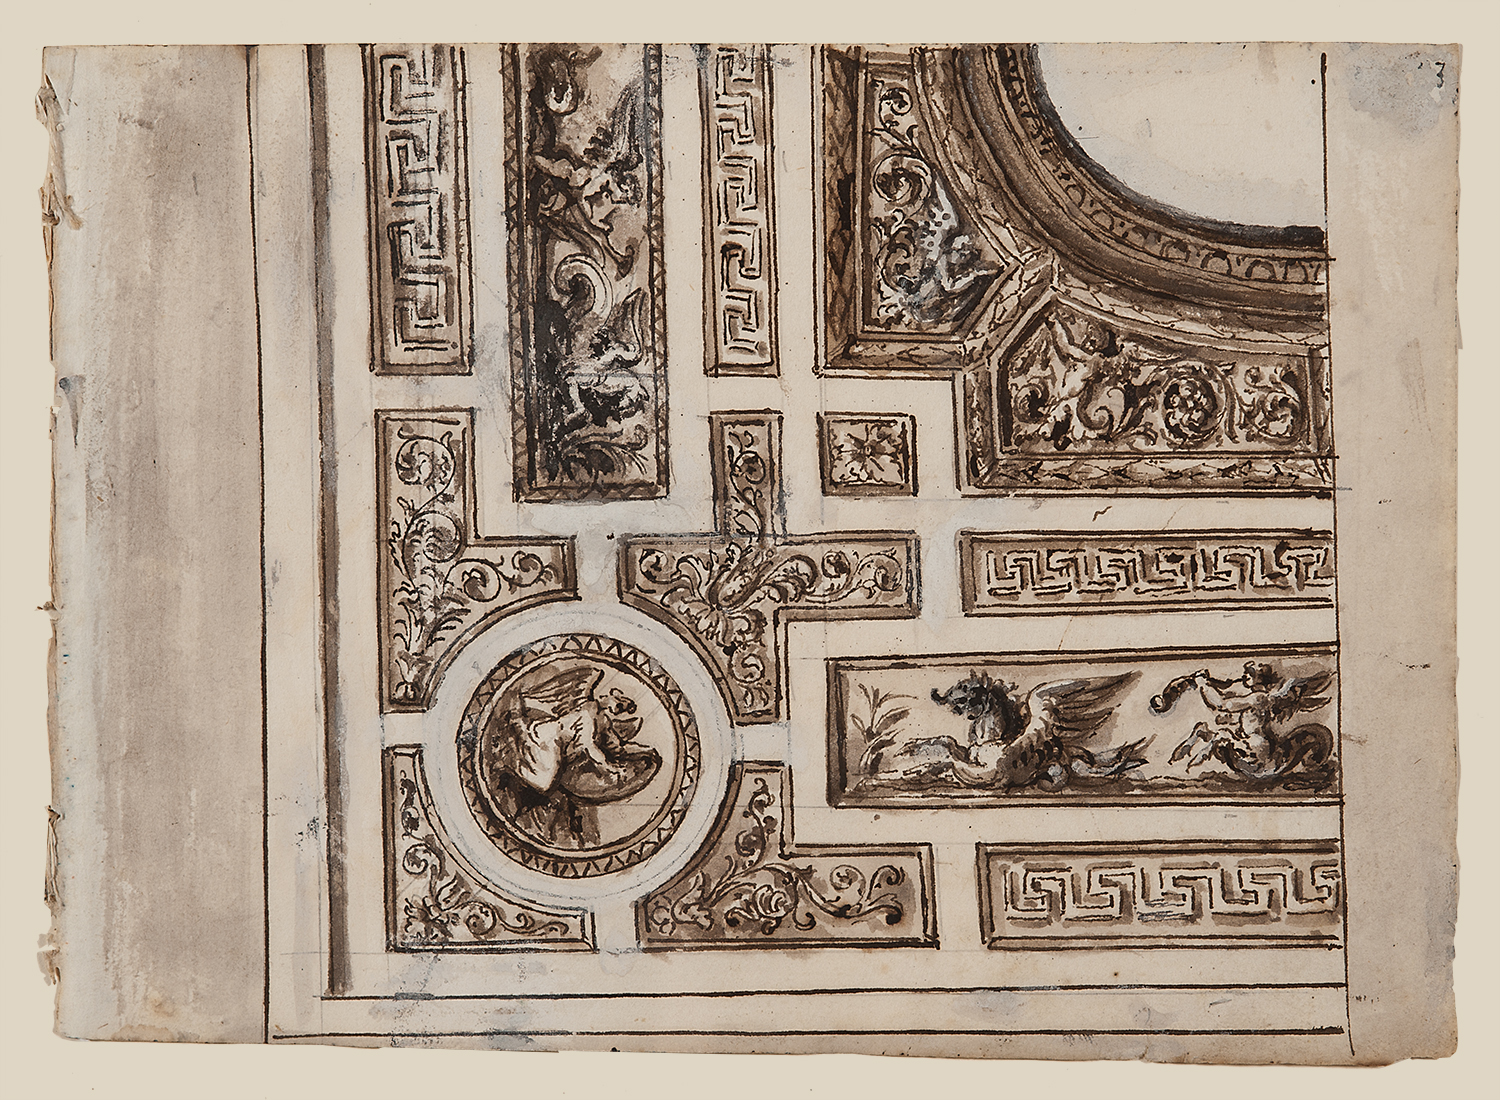 """Italian School, c. 1800, Architectural Detail 1439, ink, lavis (wash) and gouache on paper,14 x 15 1/2"""" framed"""